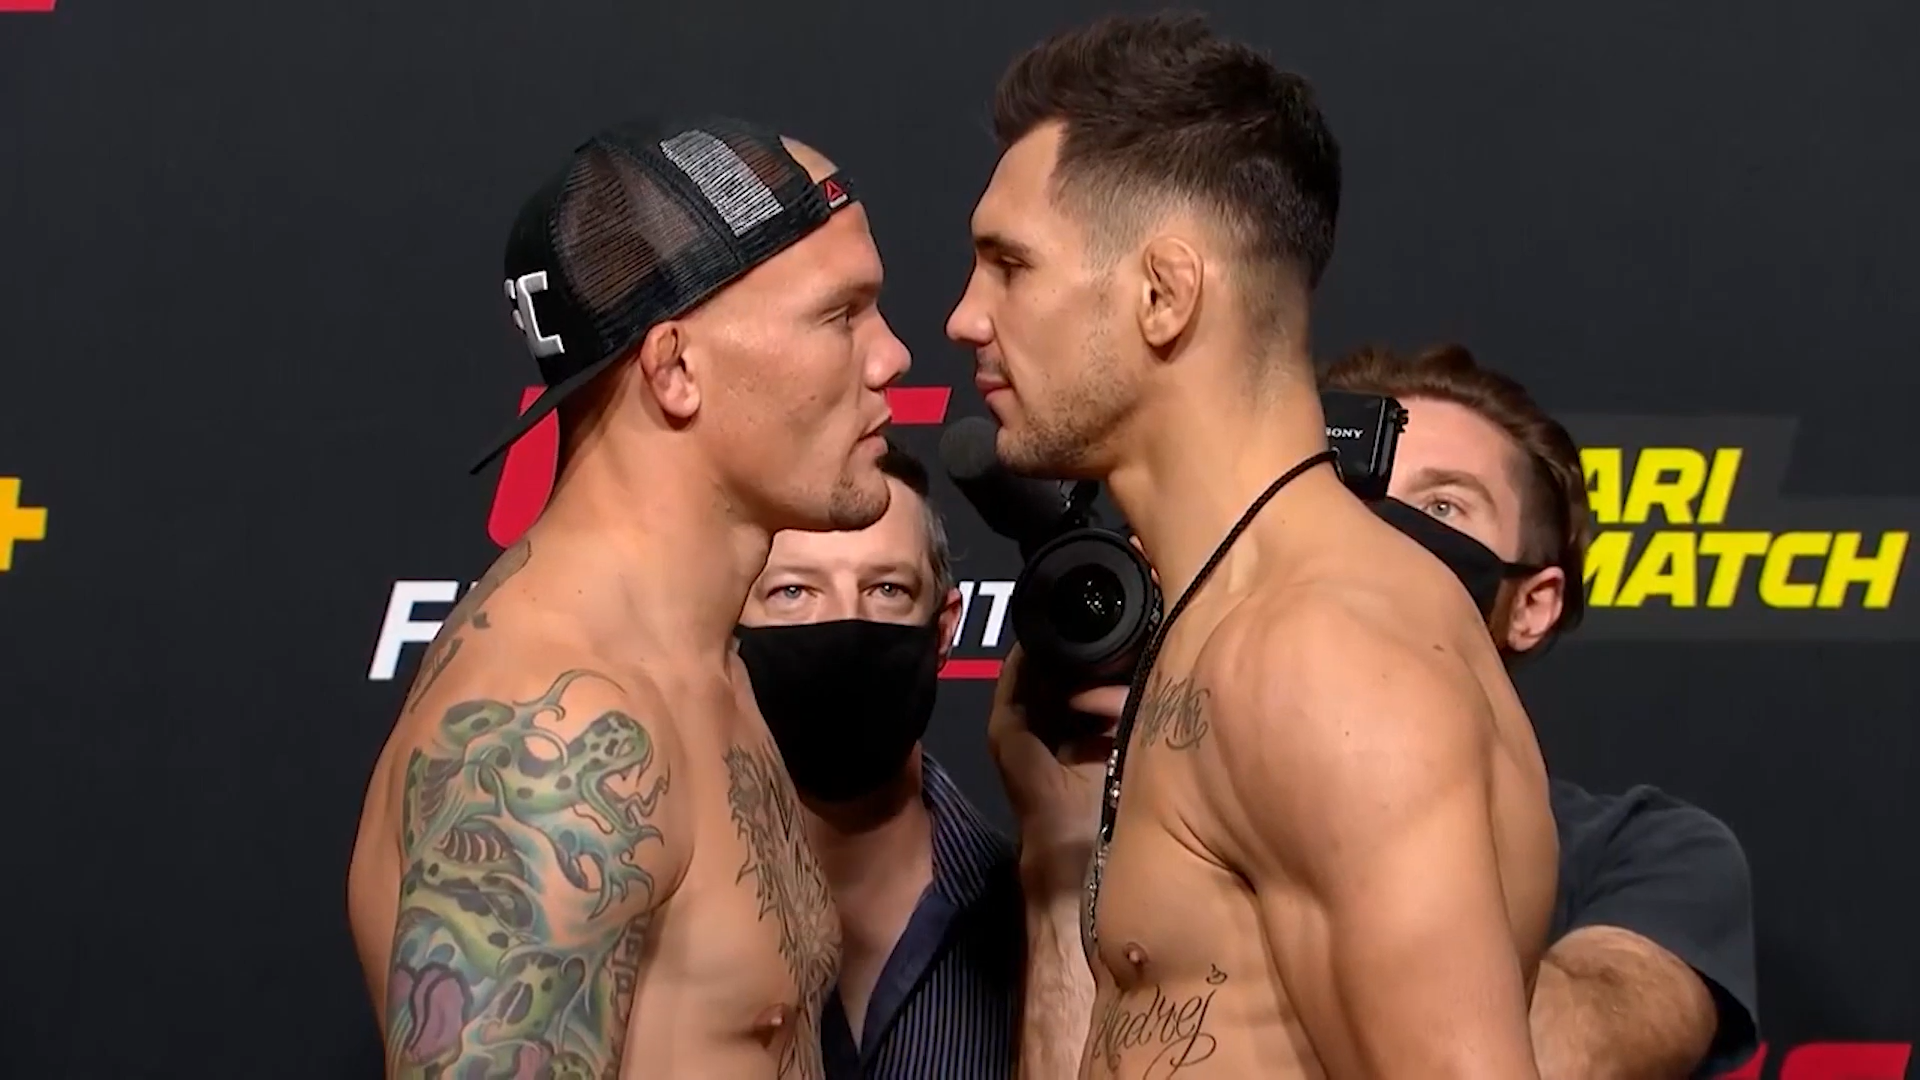 Watch Ufc On Espn 33 Weigh In Staredowns Fight Sports